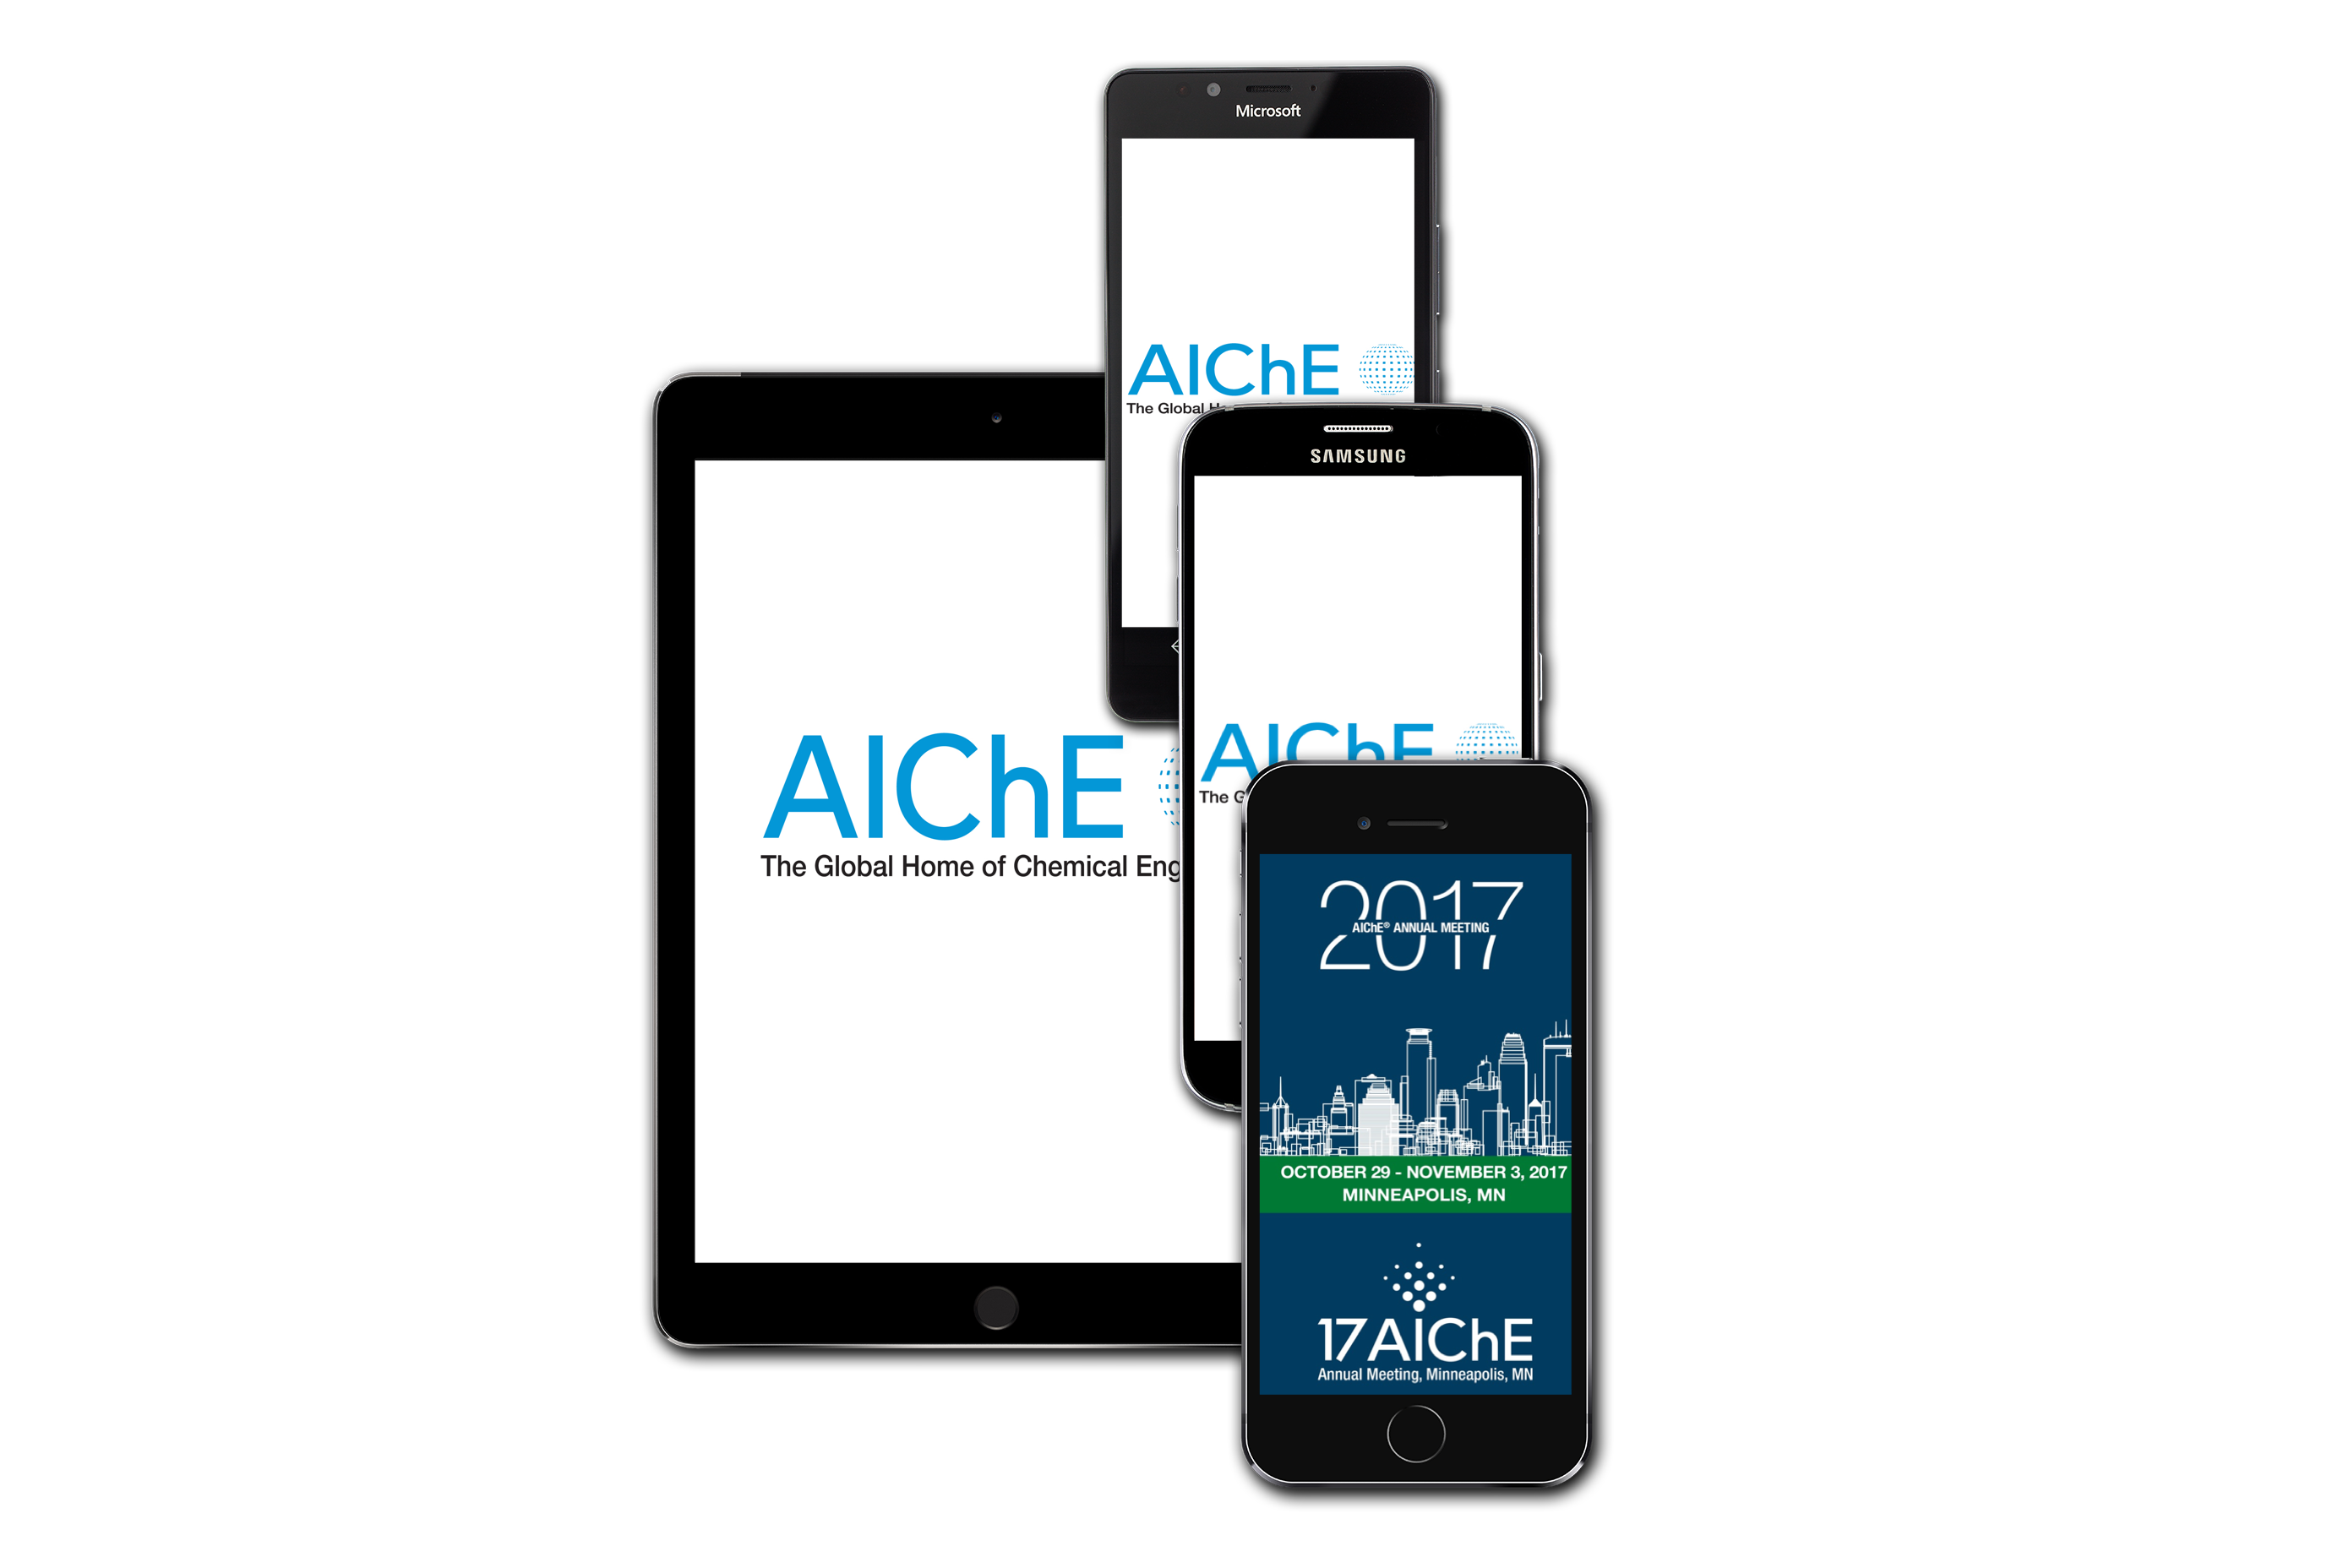 aiche meetings Welcome to the website of the university of houston chapter of the american institute of chemical engineers (aiche uh) find out more about aiche at uh by scrolling.